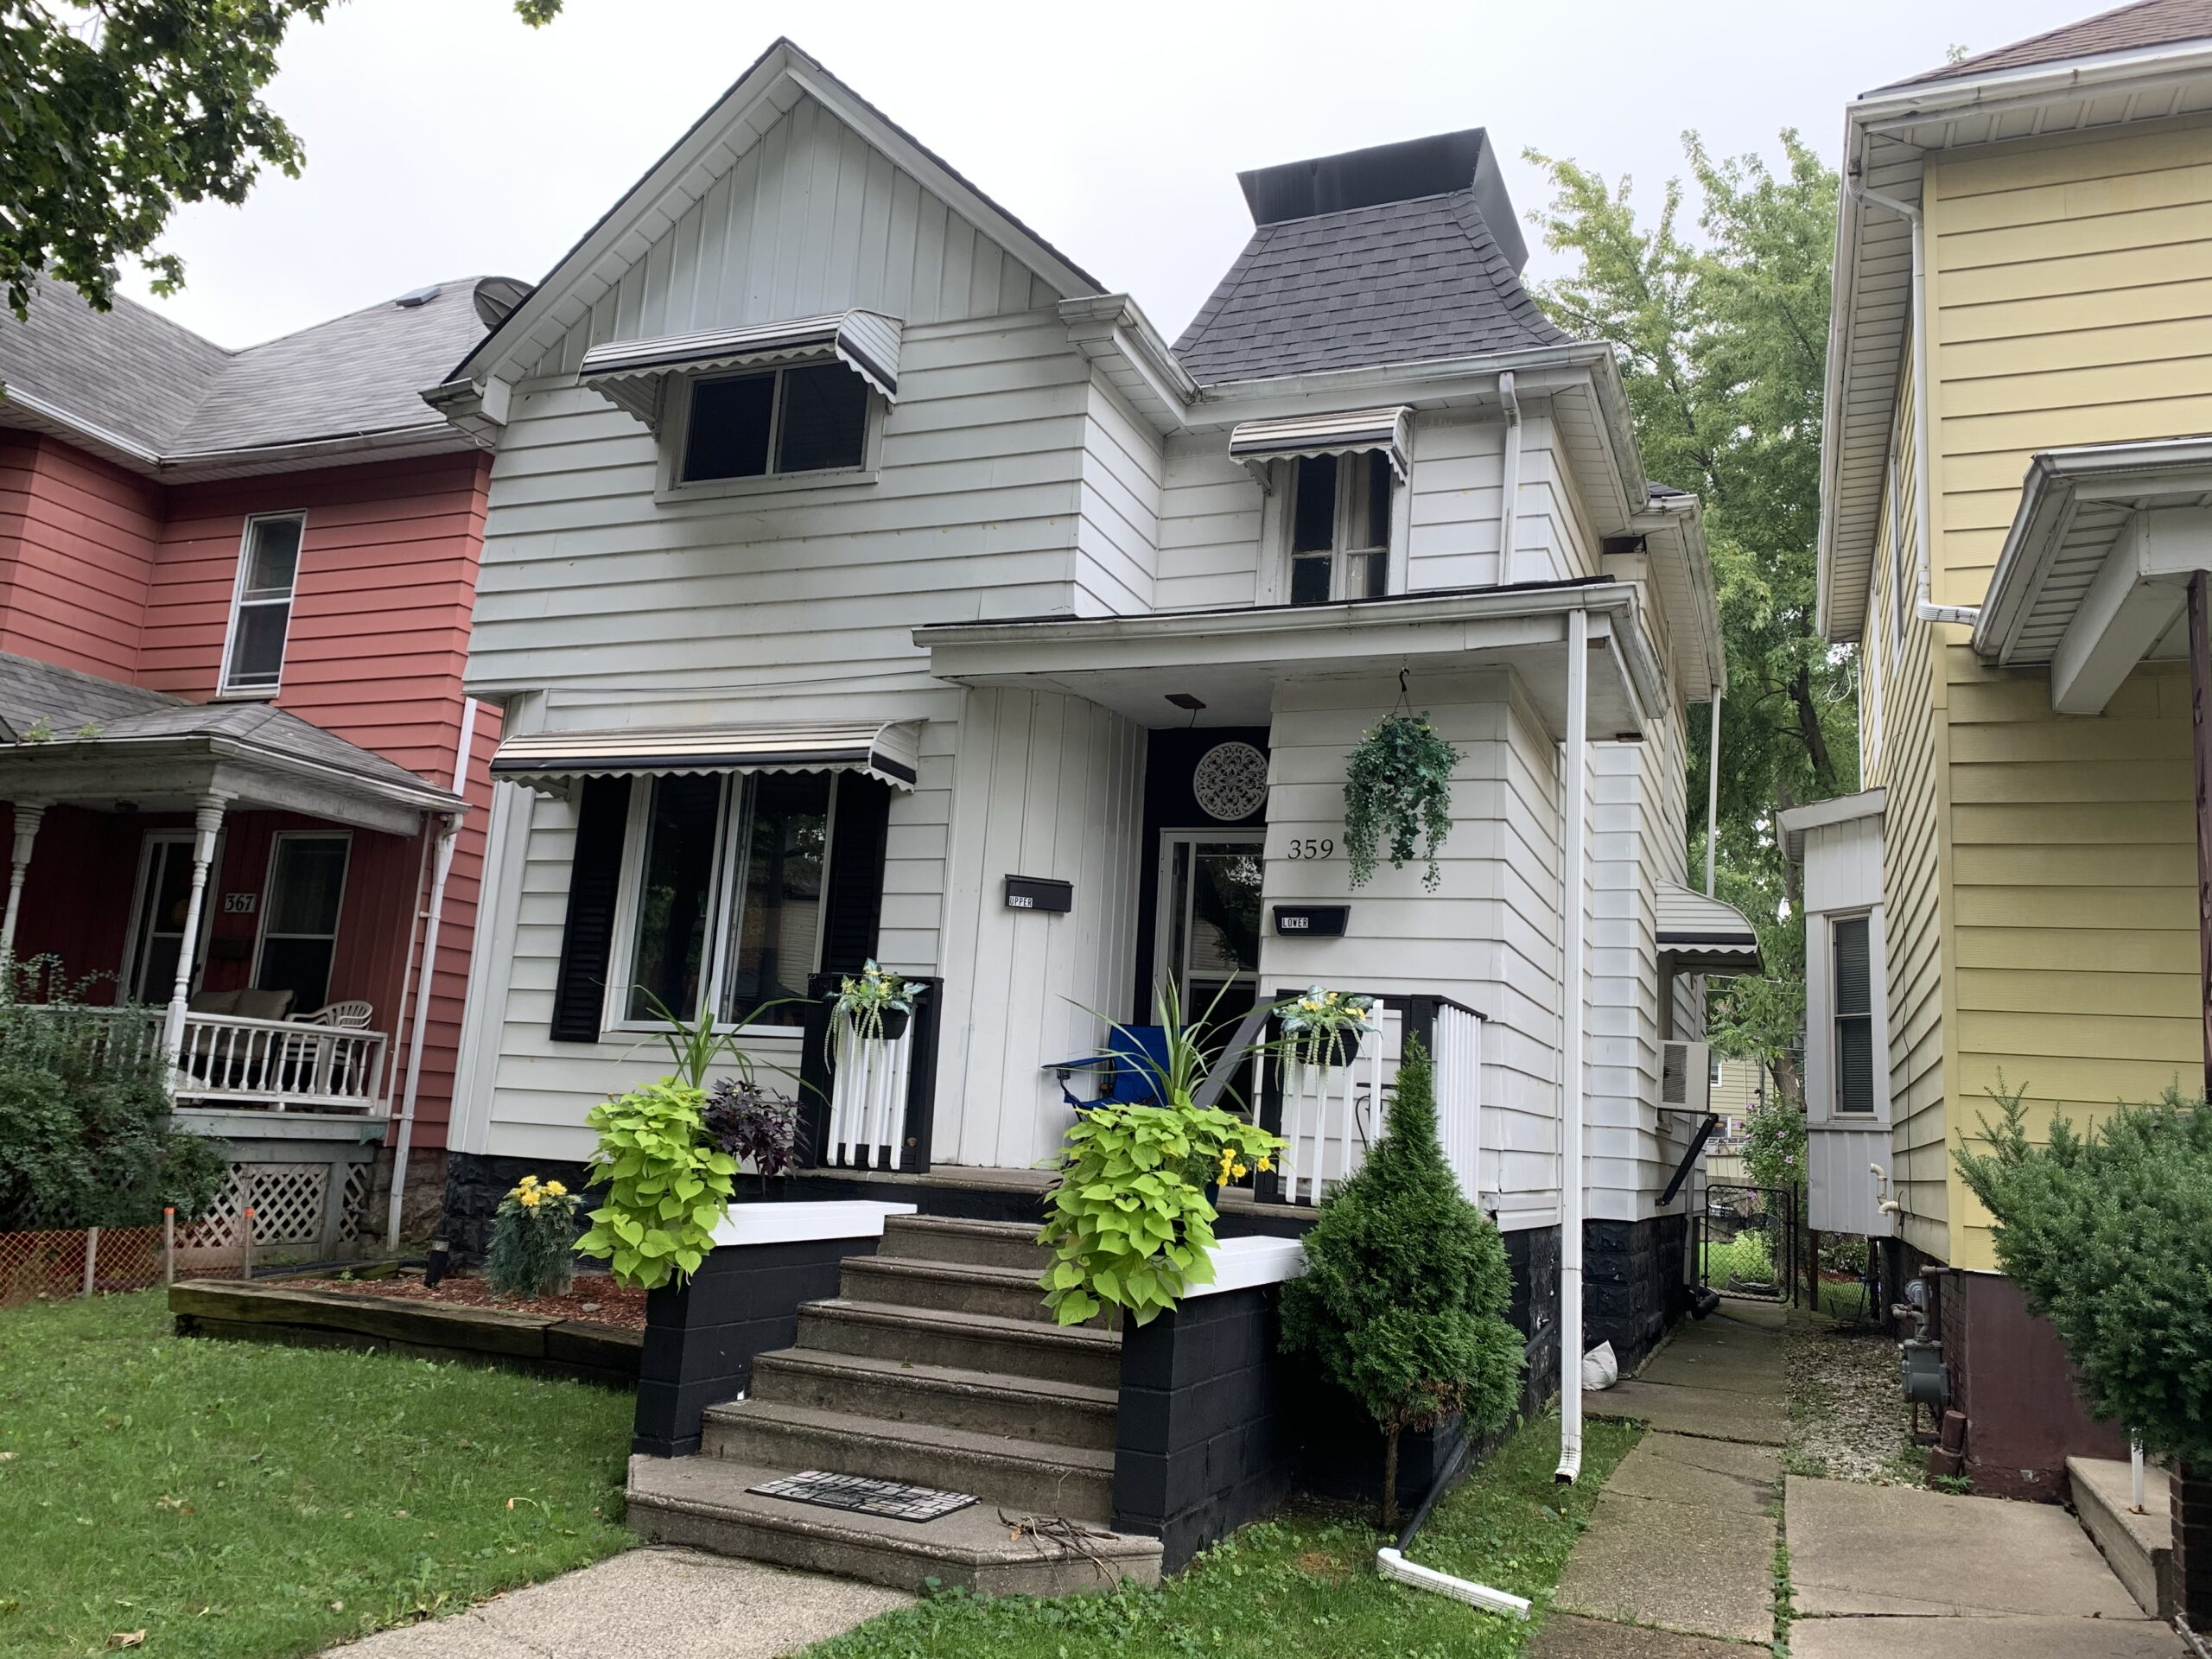 WELL MAINTAINED UPPER UNIT WITH 2 BEDROOMS & LAUNDRY IN WALKERVILLE